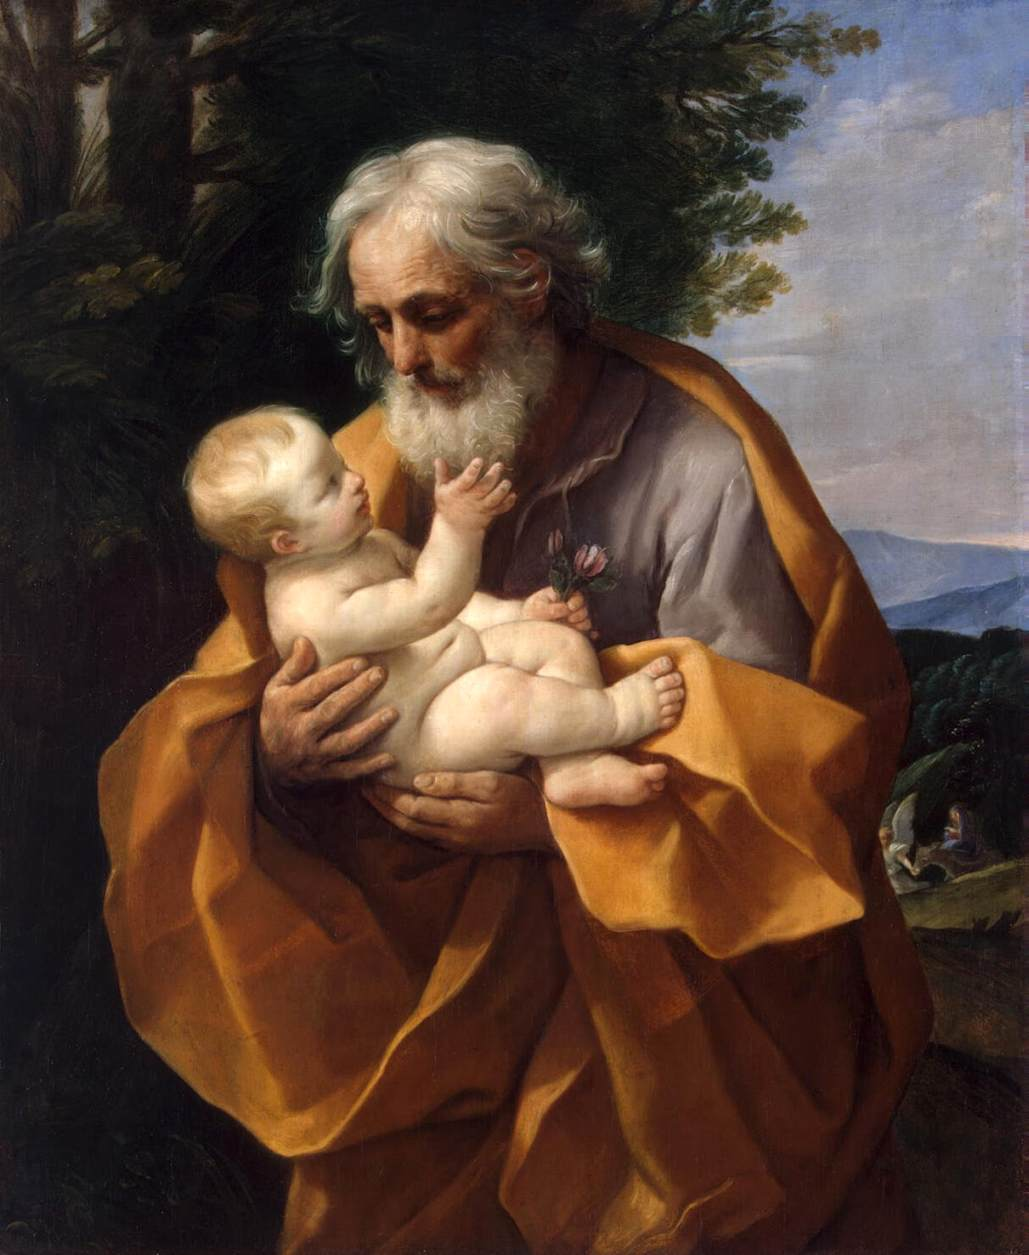 St. Joseph with the Infant Jesus - Reni 1620